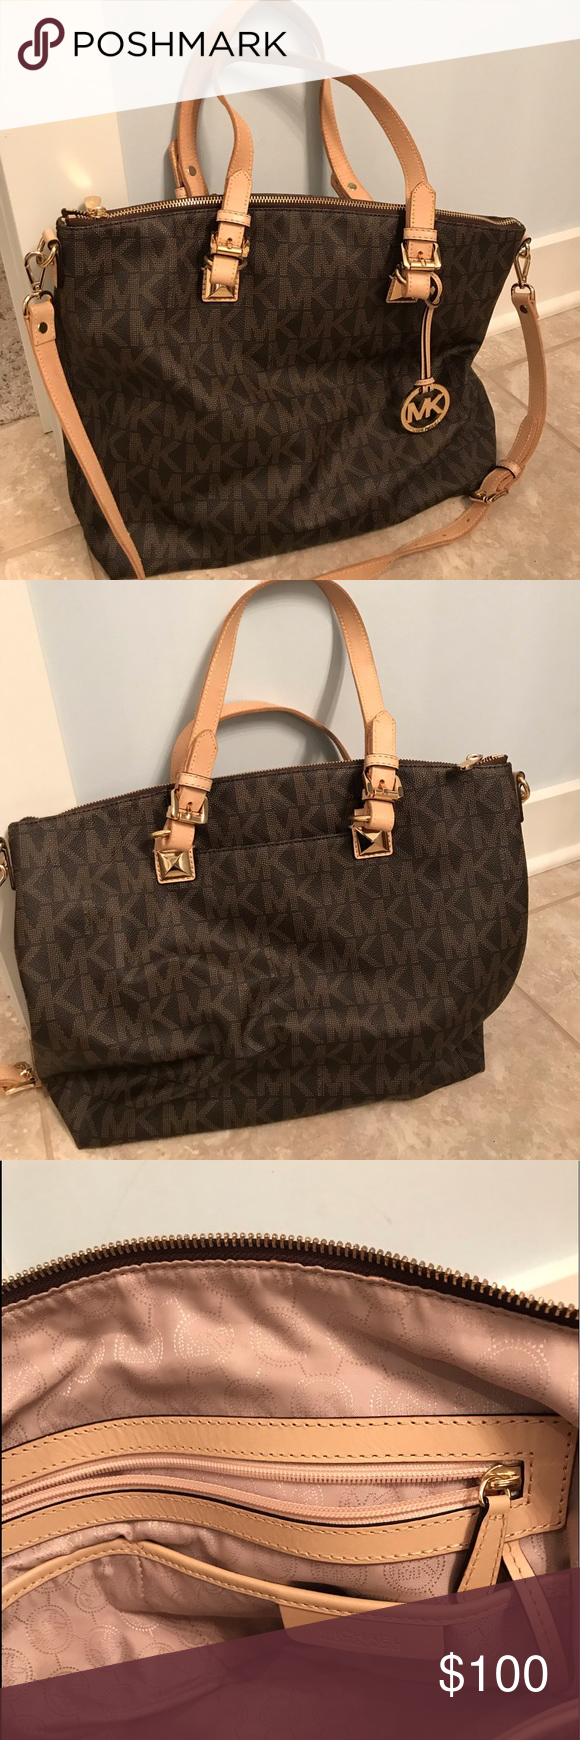 8a0a759fe2f Michael Kors Large Jet Set Tote Authentic bag Handles are not authentic-  had to be